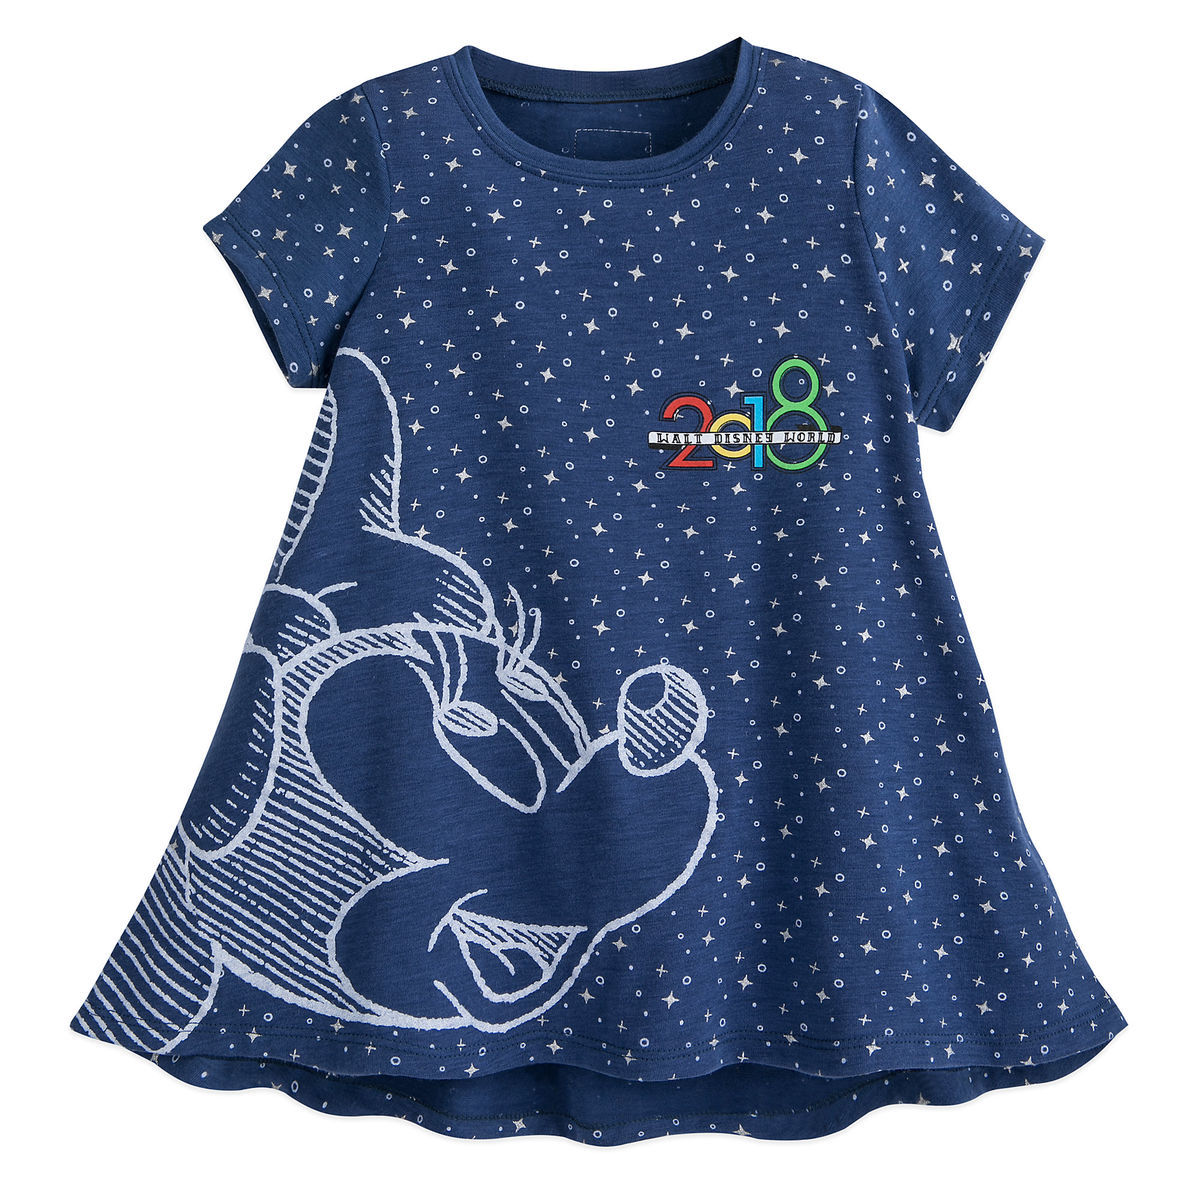 f76f61dae99 Product Image of Minnie Mouse Fashion T-Shirt for Girls - Walt Disney World  2018